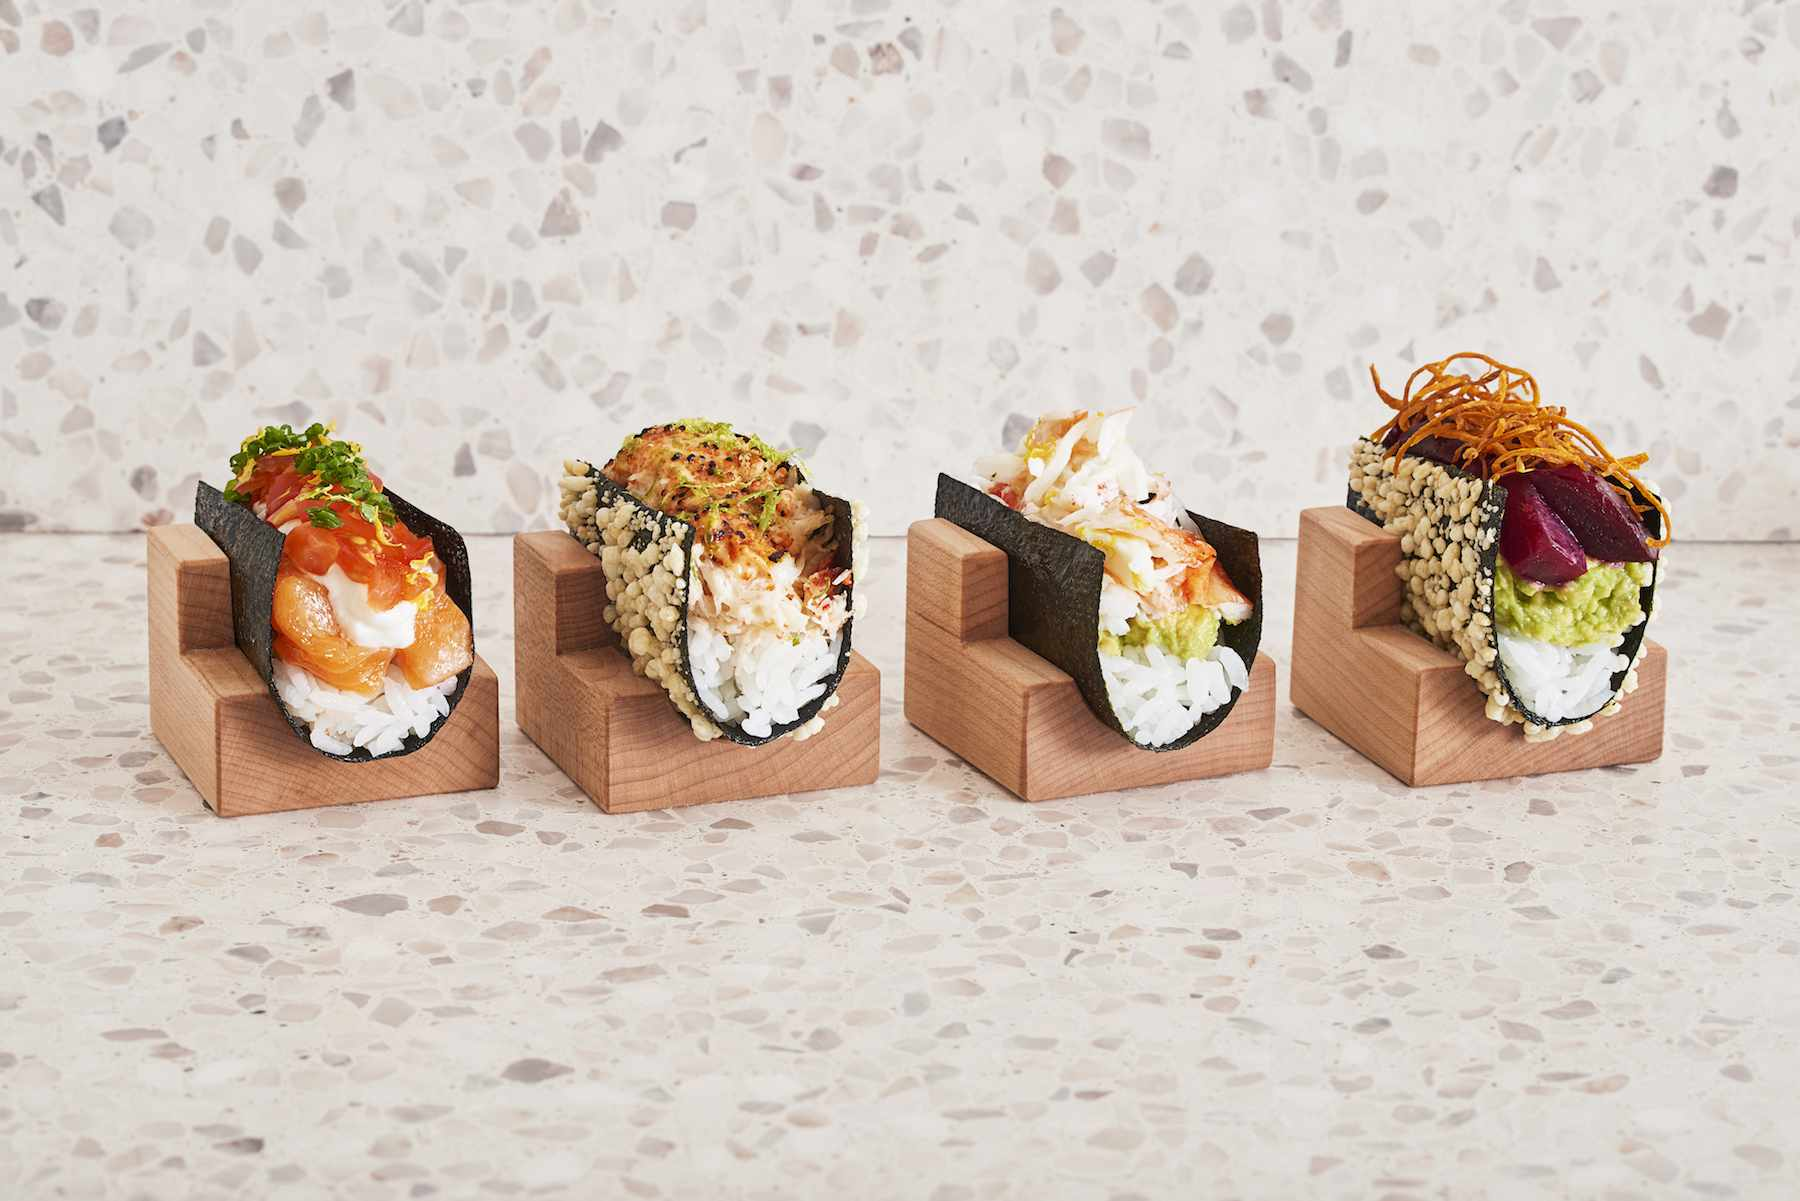 four creative sushi rolls in stands from Nami Nori